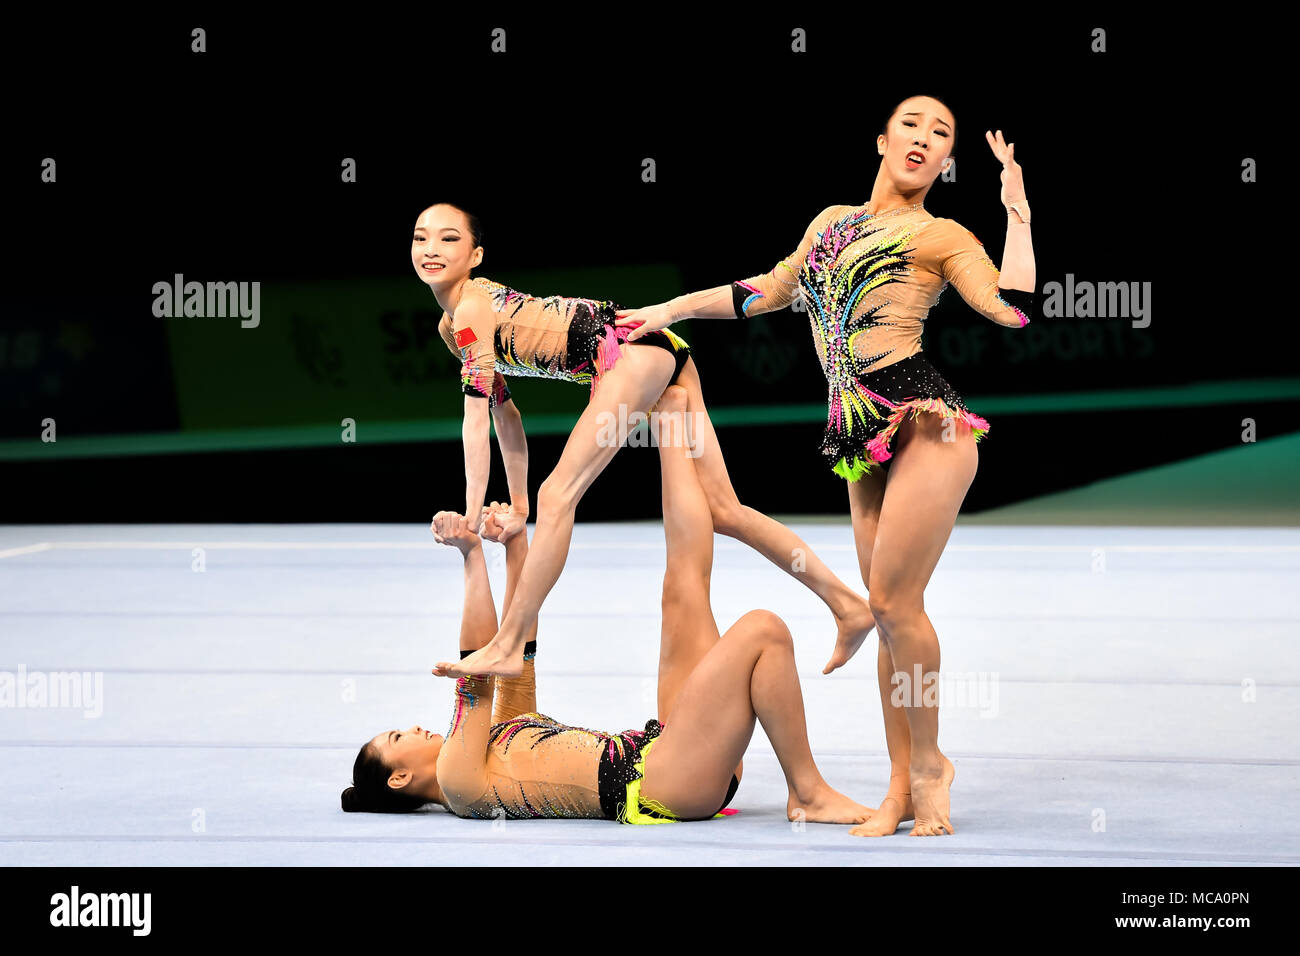 Antwerp, Belgium, 14 April 2018. The Chinese Women's Team performs in Women's Group  during the 26th World Championships Acrobatics Gymnastics 2018 at Lotto Arena on Saturday, 14 April 2018. A Credit: Taka Wu/Alamy Live News - Stock Image